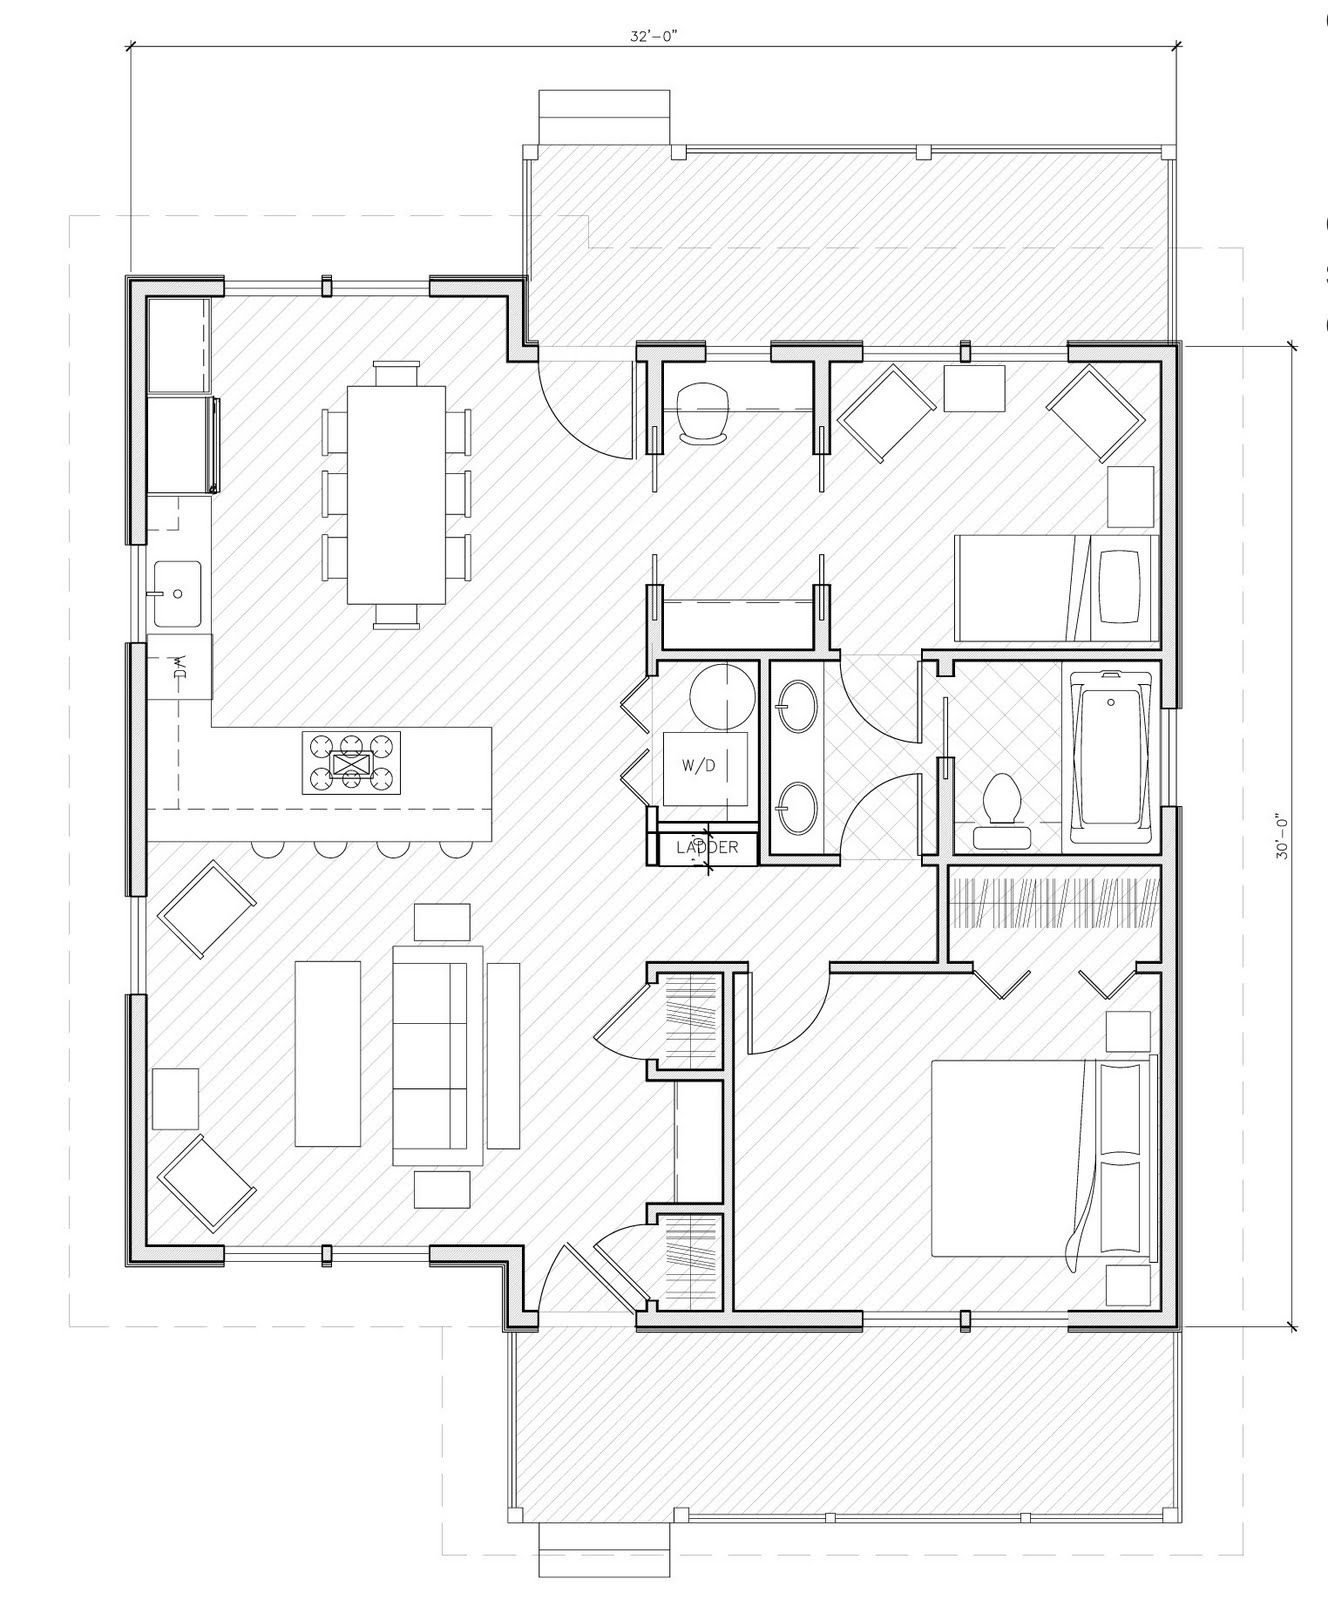 17 Best 1000 images about 2 Small Houses 1000 sq ft on Pinterest